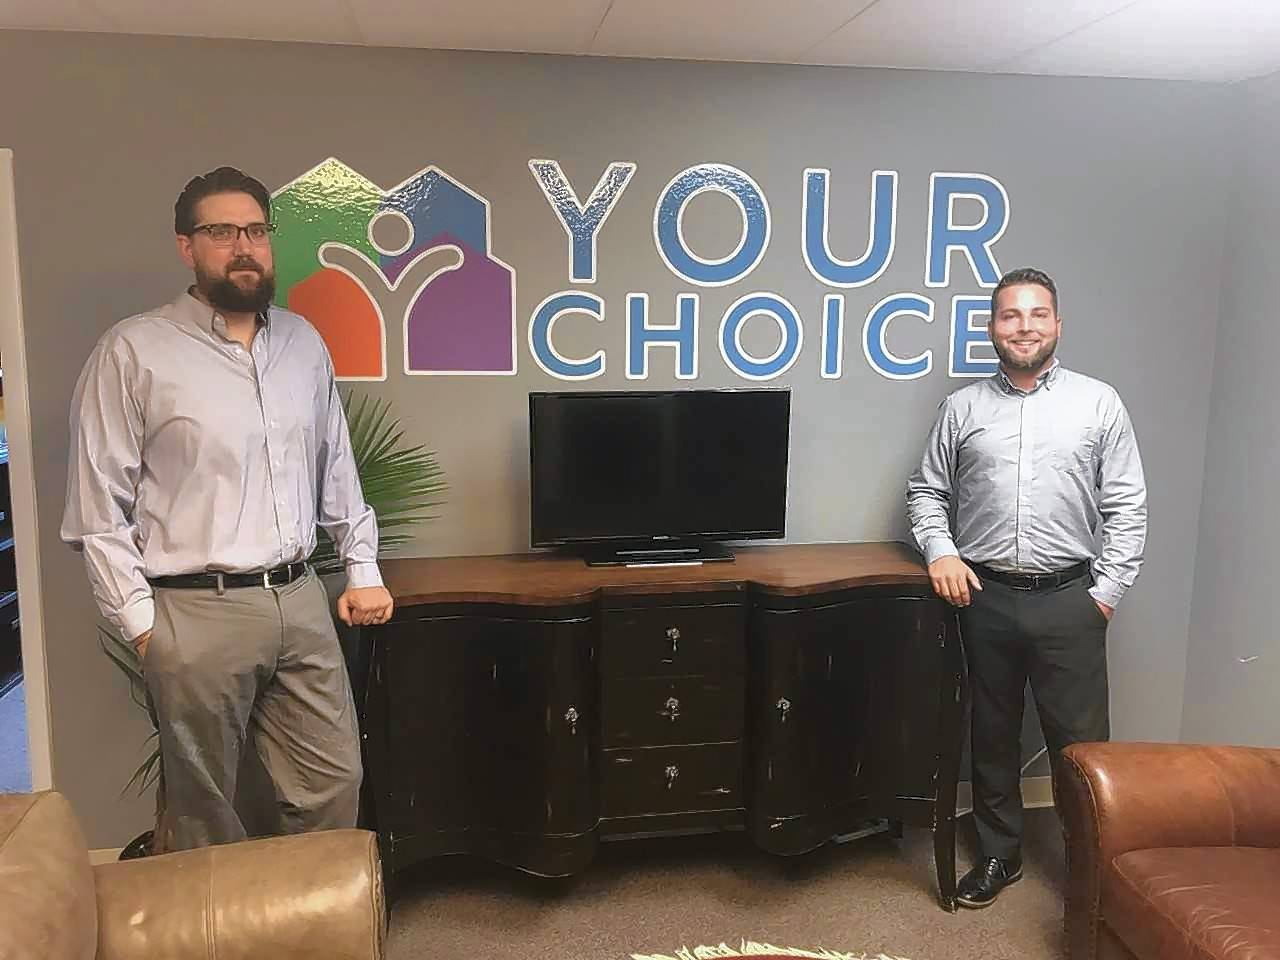 Wanting to work more directly with people diagnosed with intellectual and developmental disabilities, former Hawthorn Woods resident David Dryden, right, and business partner William Kramer turned to GoFundMe to help launch their new venture called Your Choice.